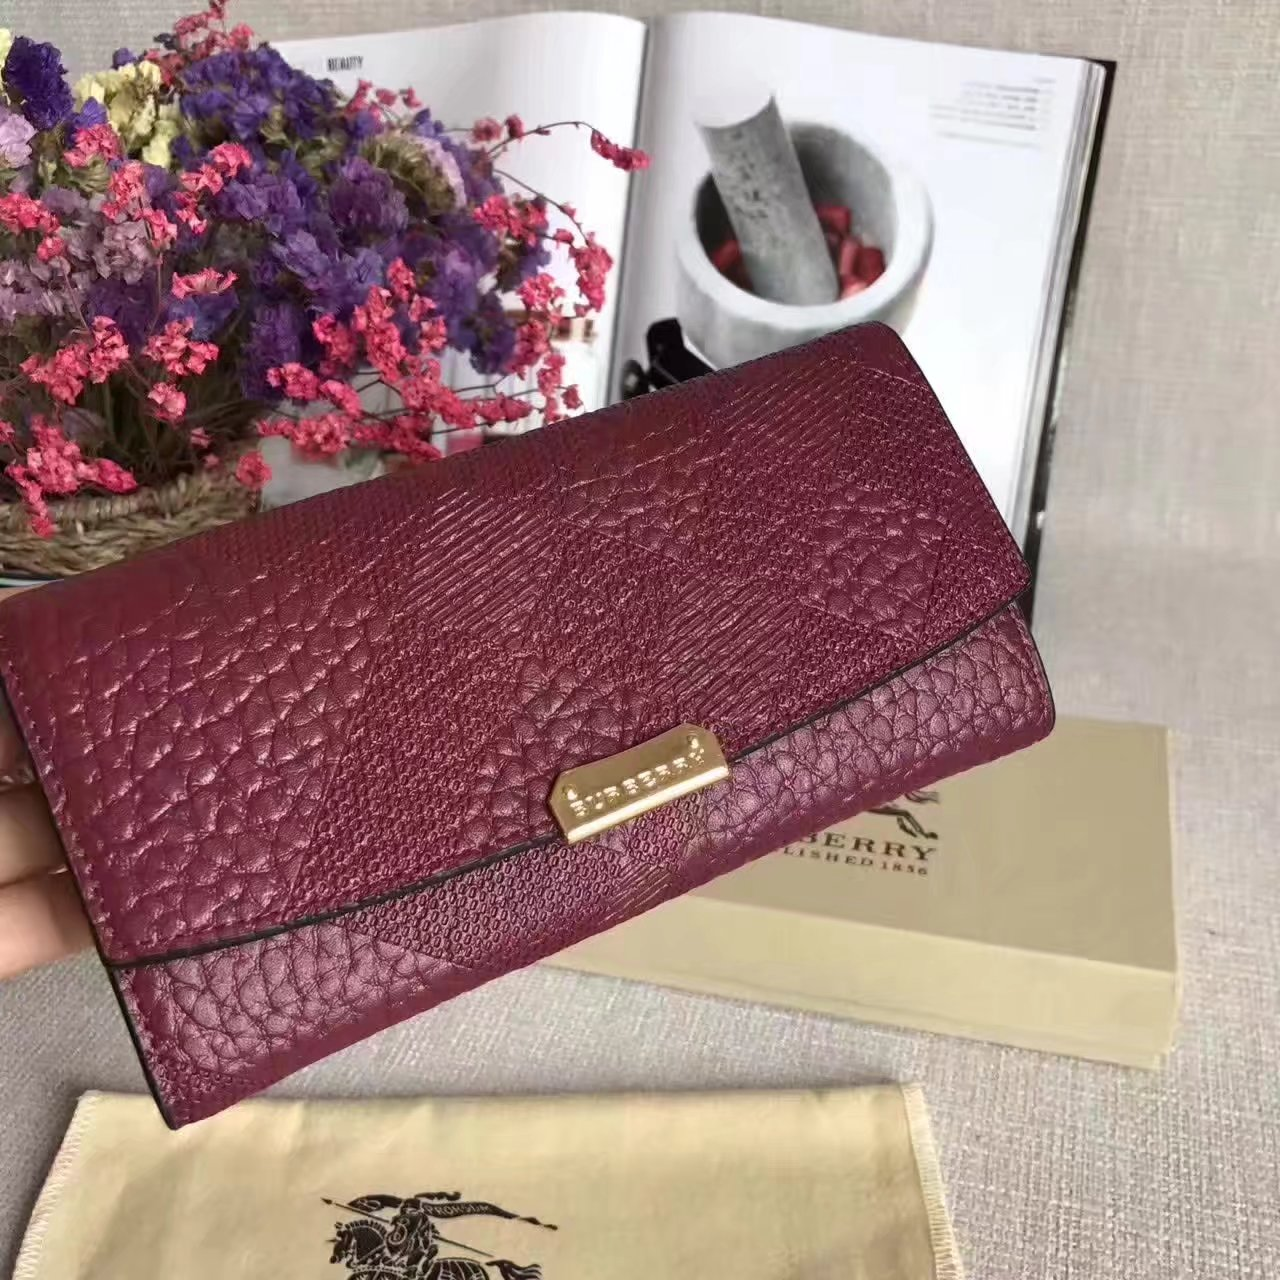 Burberry Leather Wallet with Chain Burgundy